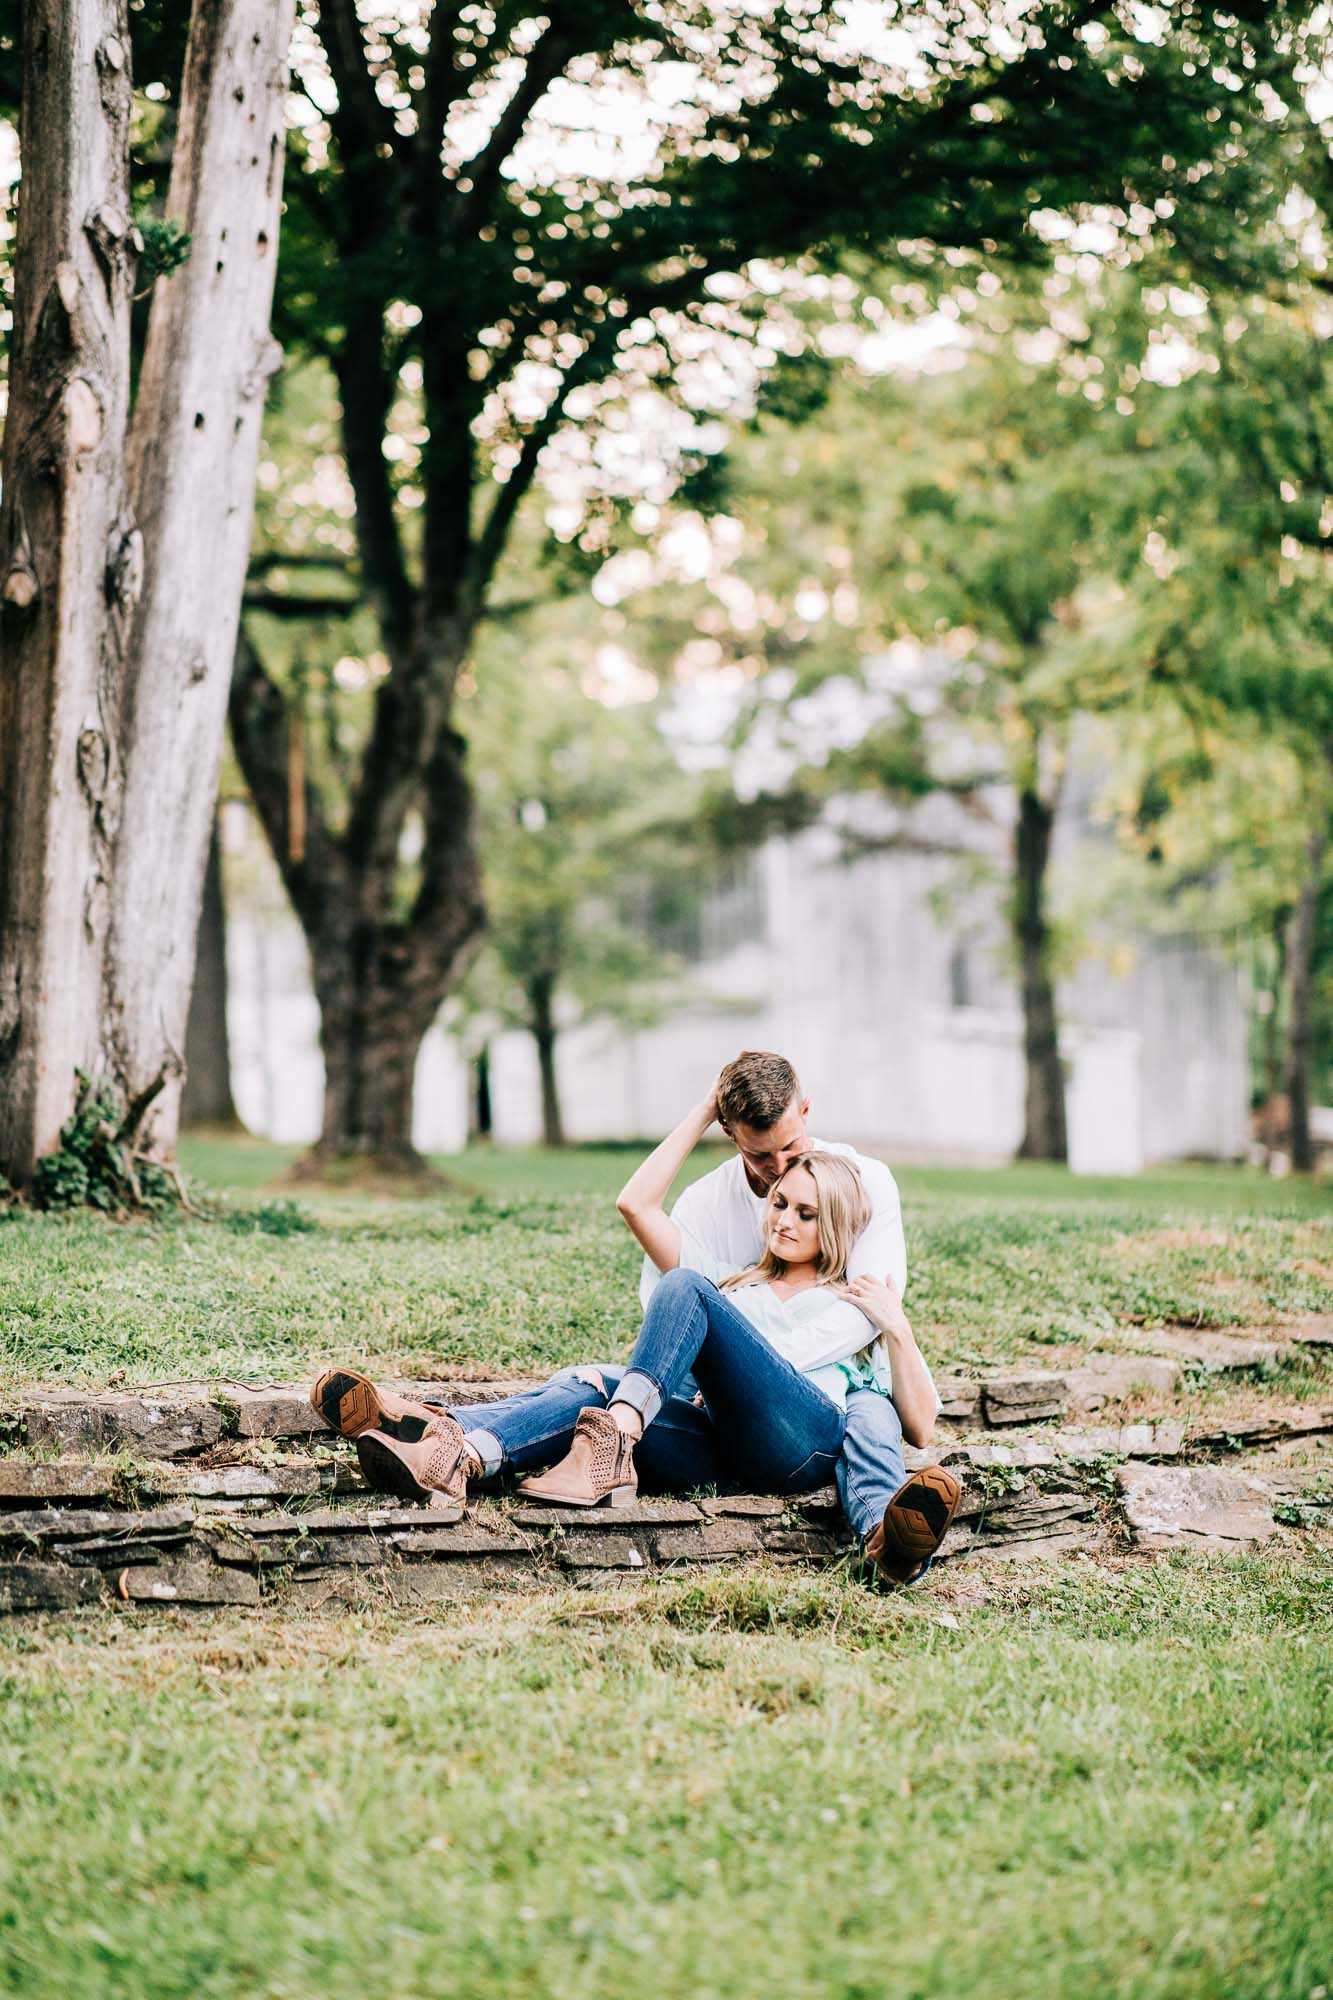 Sweet-valley-engagement-session-8834.jpg